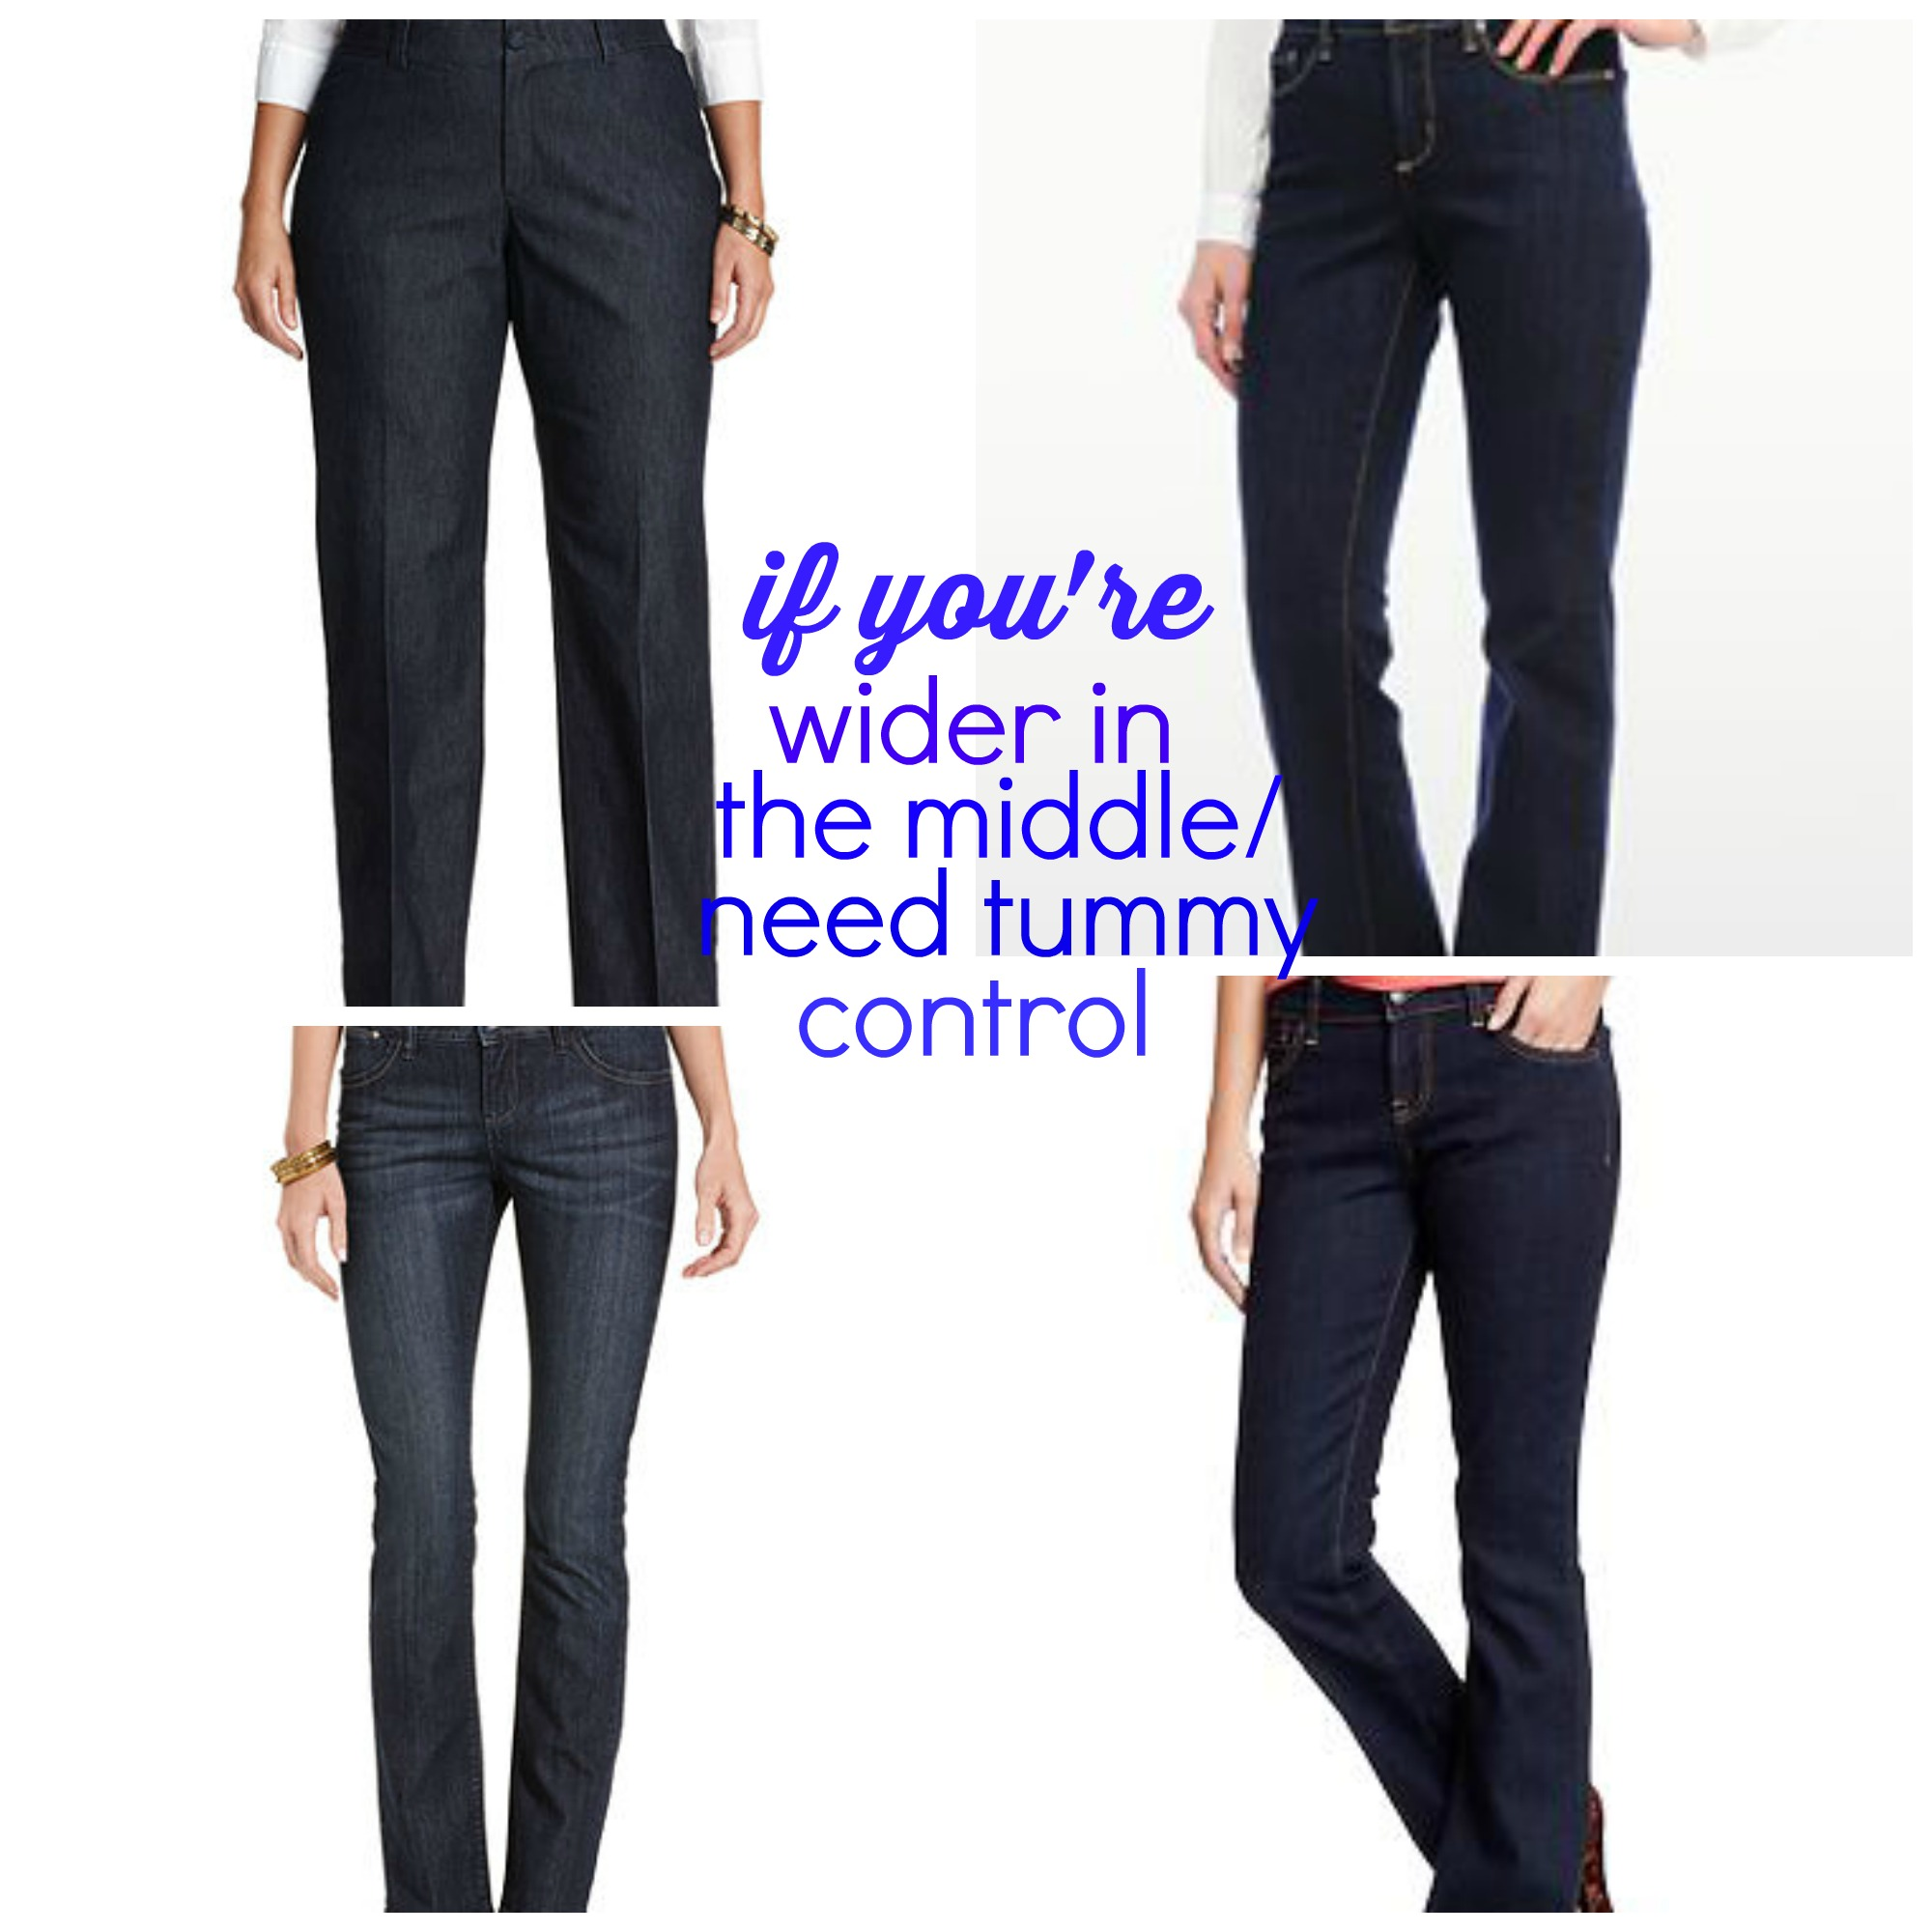 Tummy Control Jeans That Give You a Flat Stomach